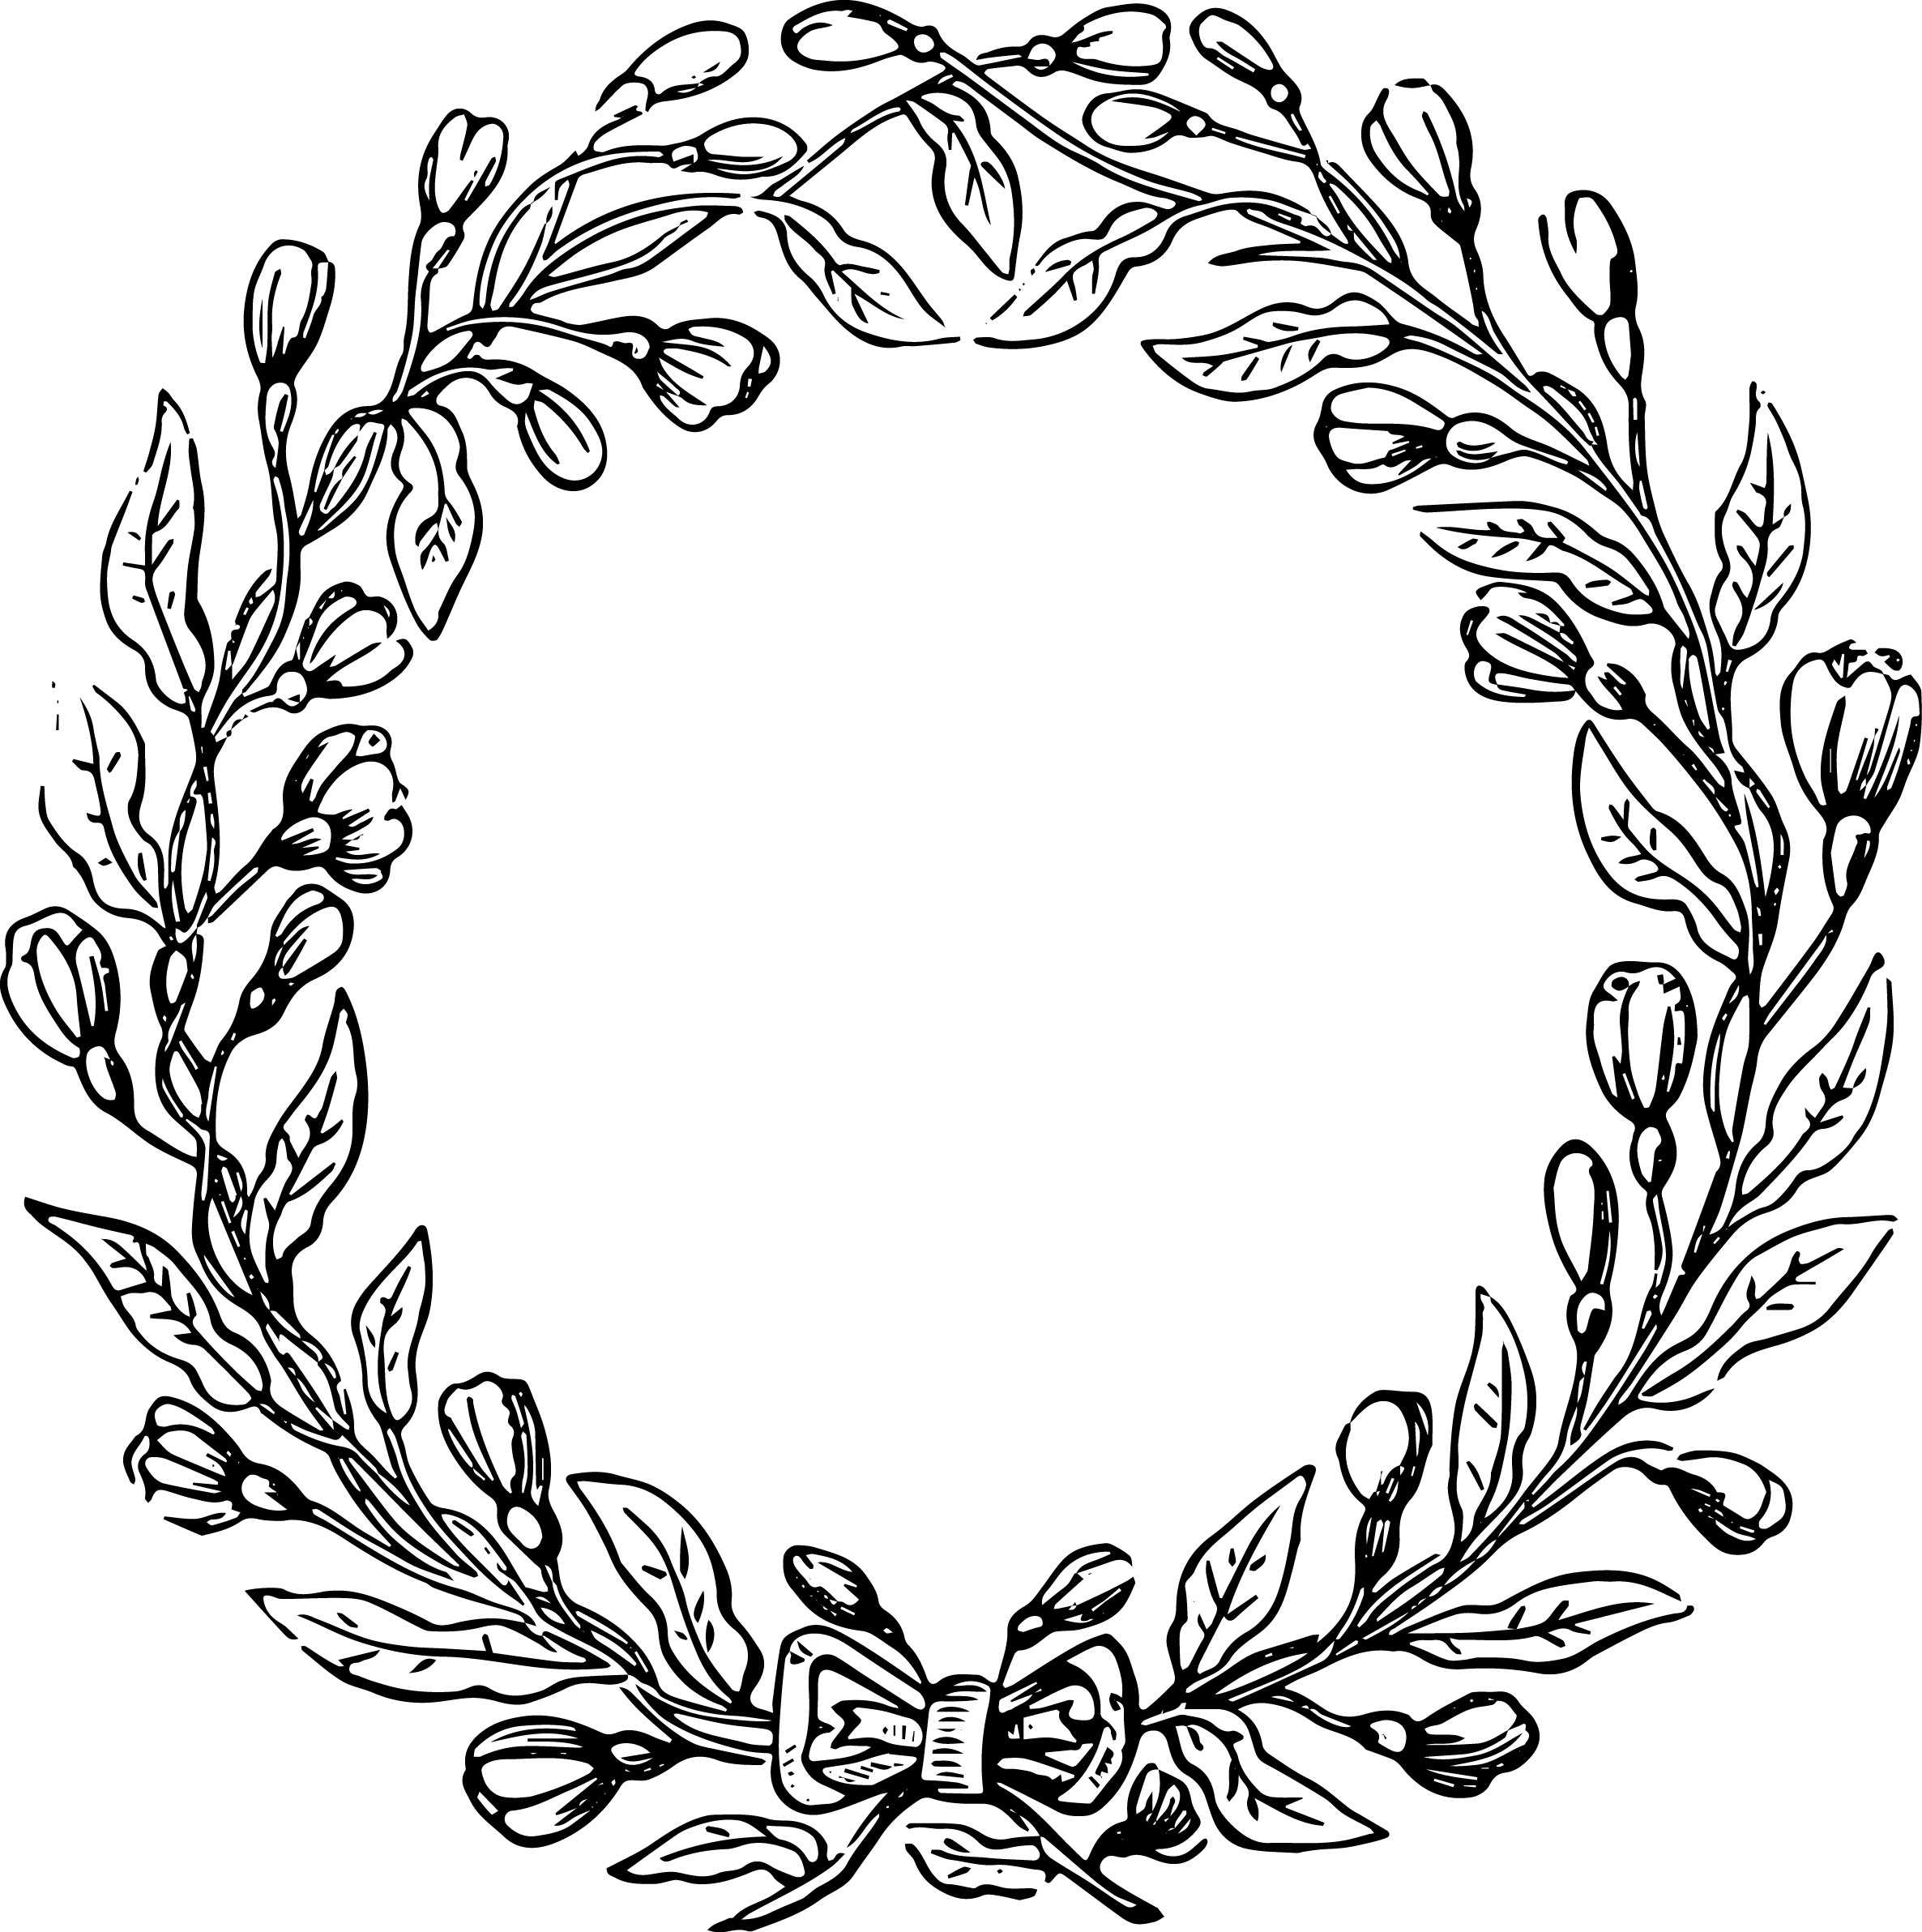 PNG Wreath Black And White - 41084